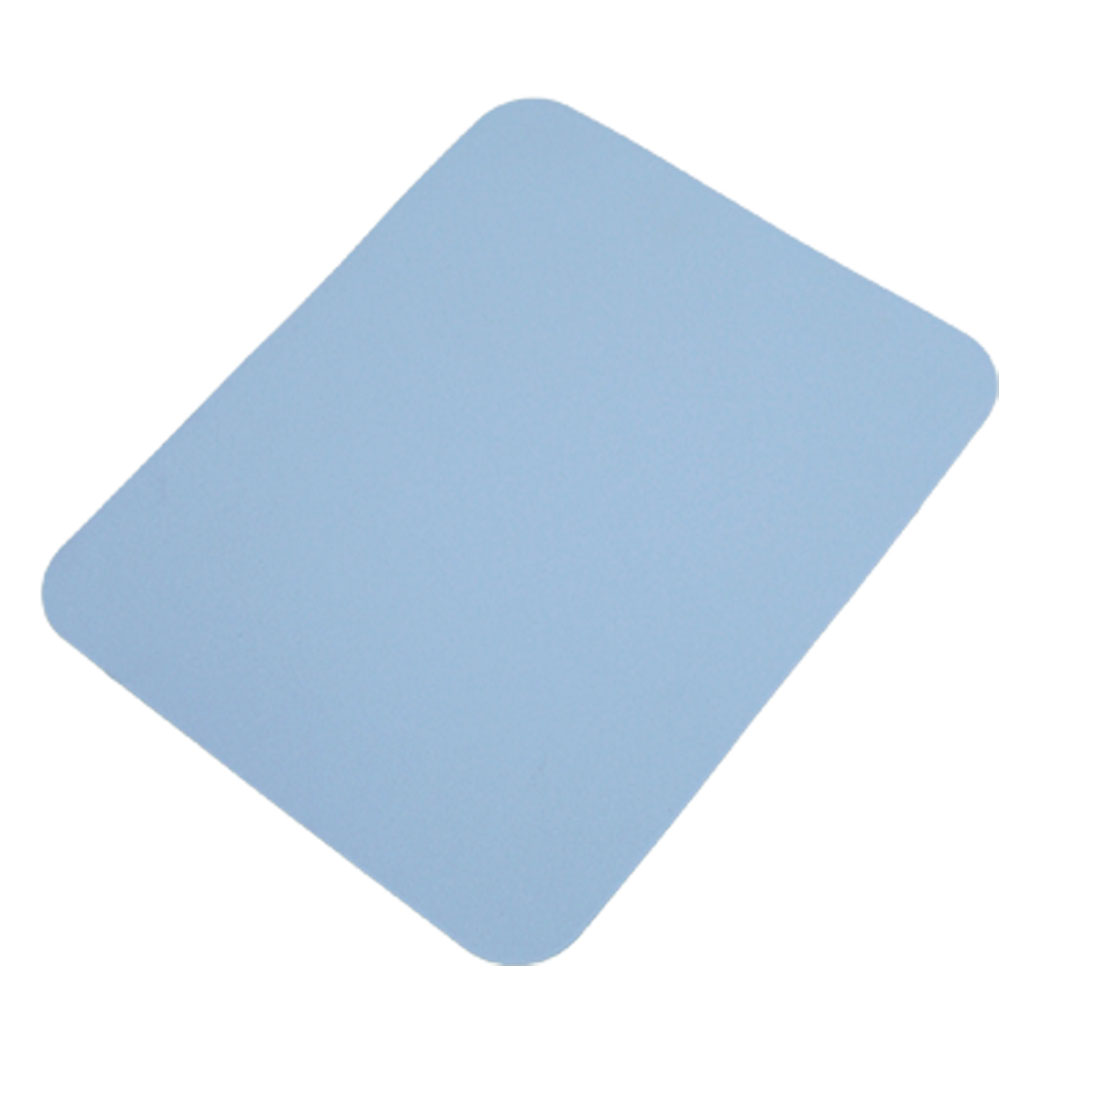 Sky Blue Silicone Mouse Pad Mat for PC Computer Laptop